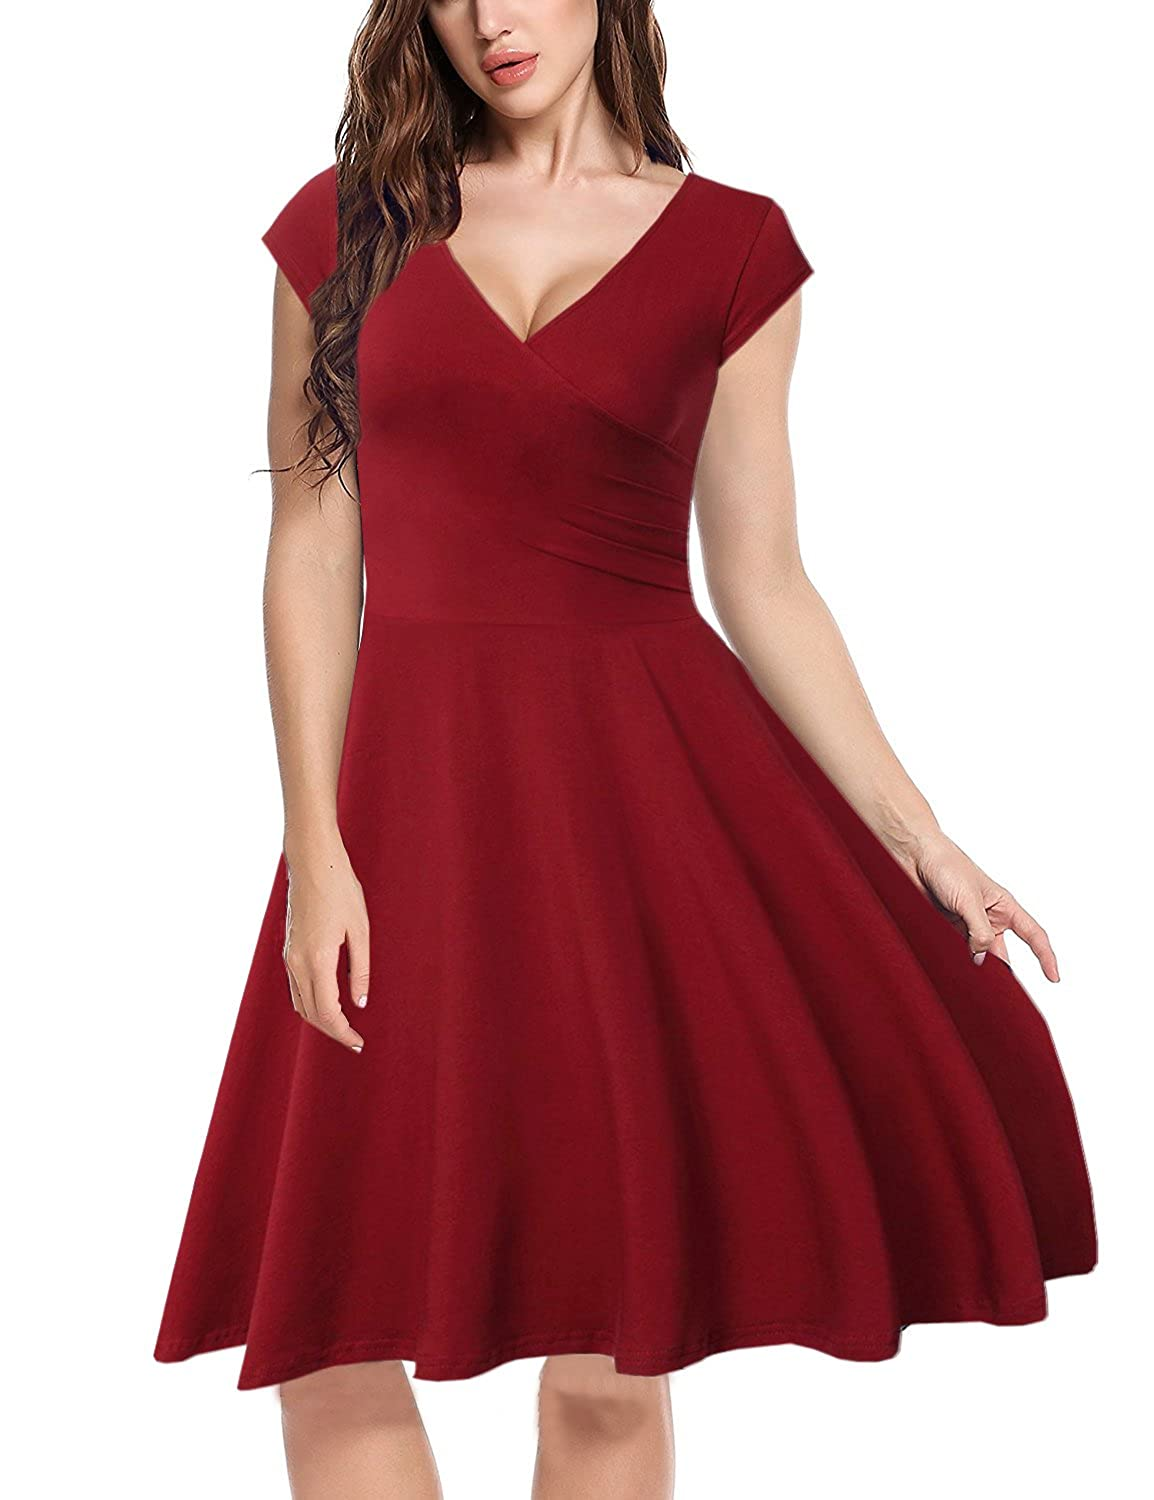 MERRYA Women's Vintage V-Neck Casual Wrap Cap Sleeve Party Swing Dress